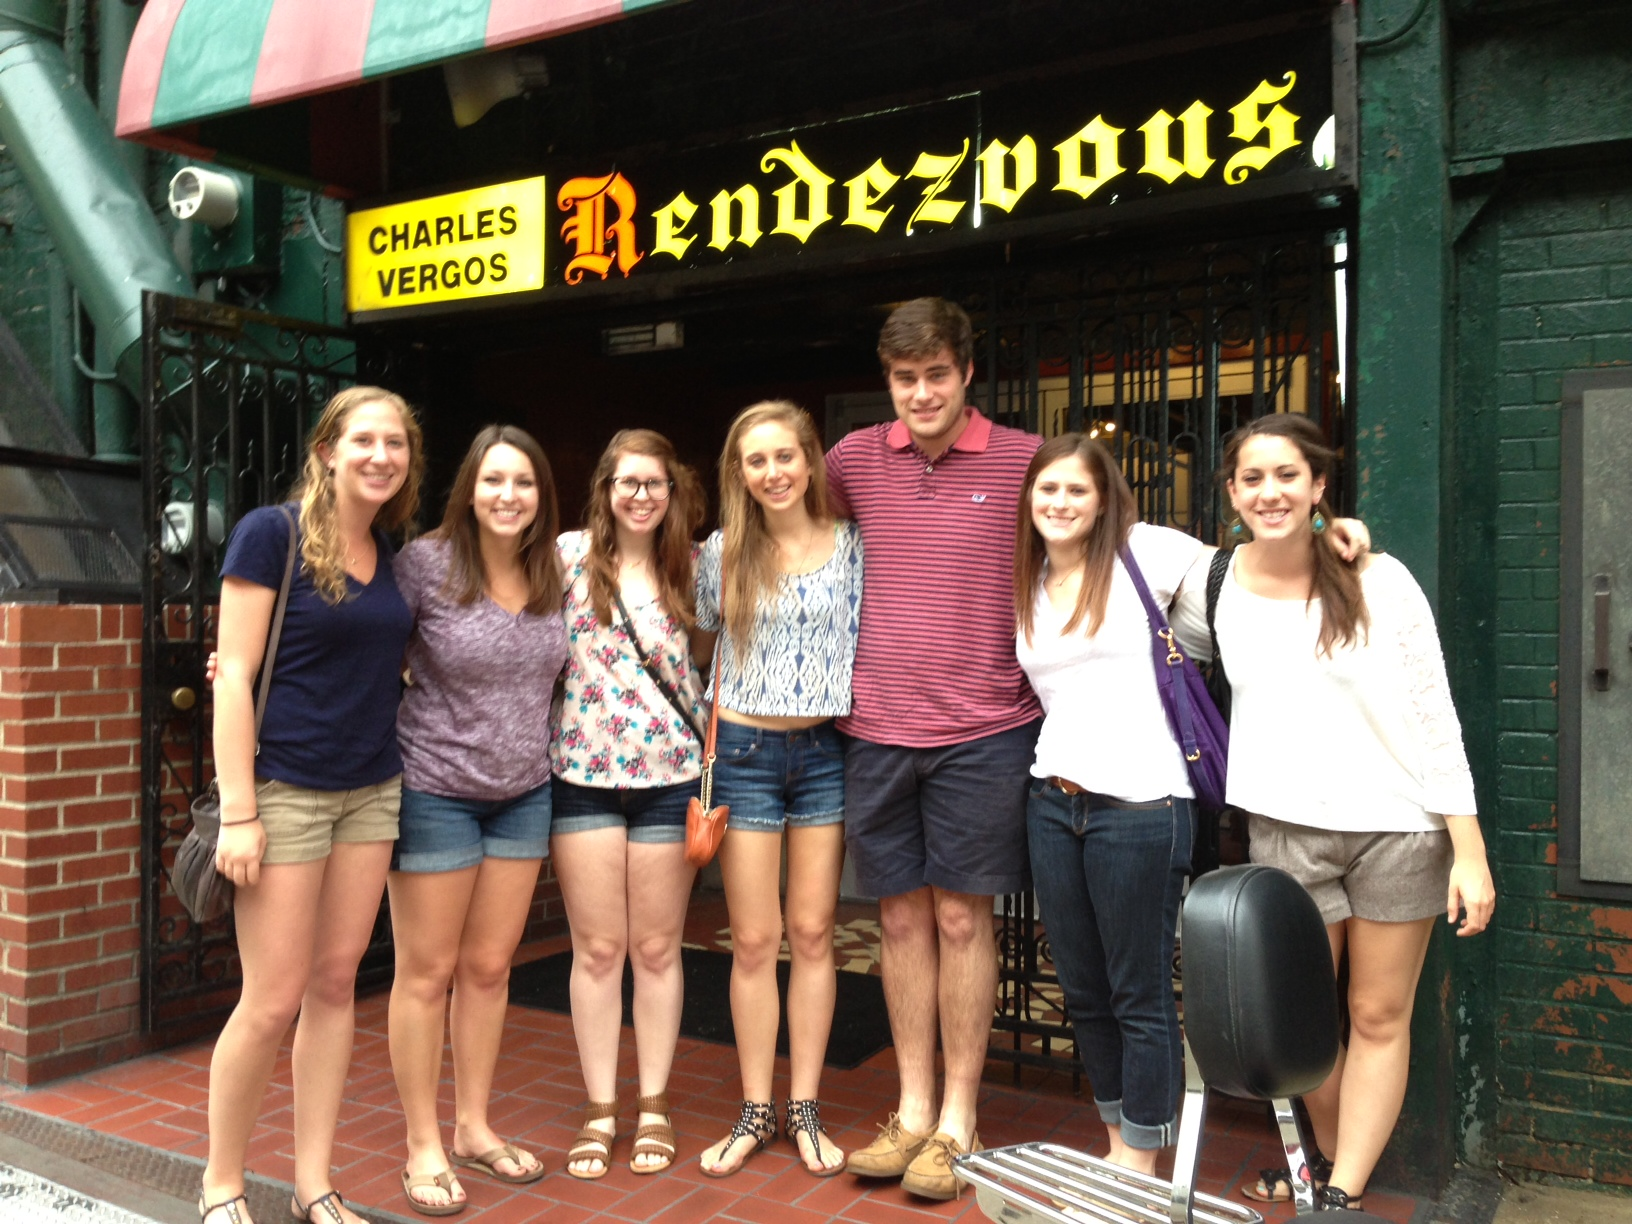 The Fellows enjoy the world famous Rendezvous bbq